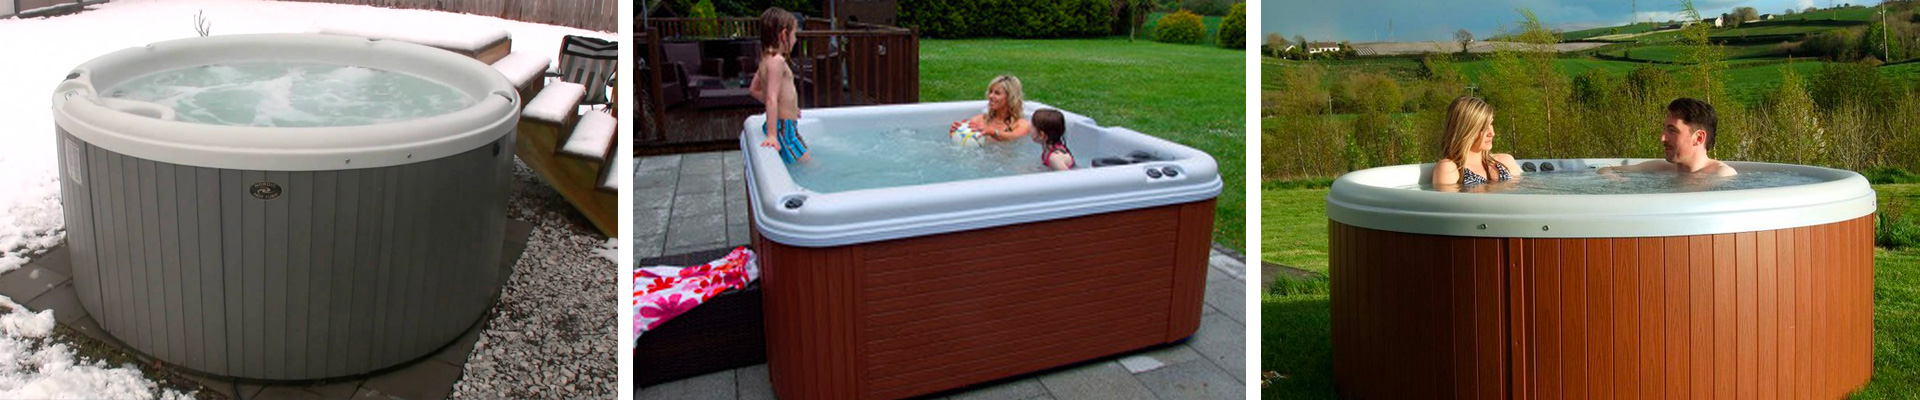 Nordic Hot Tub Accessories - Clearwater Spas